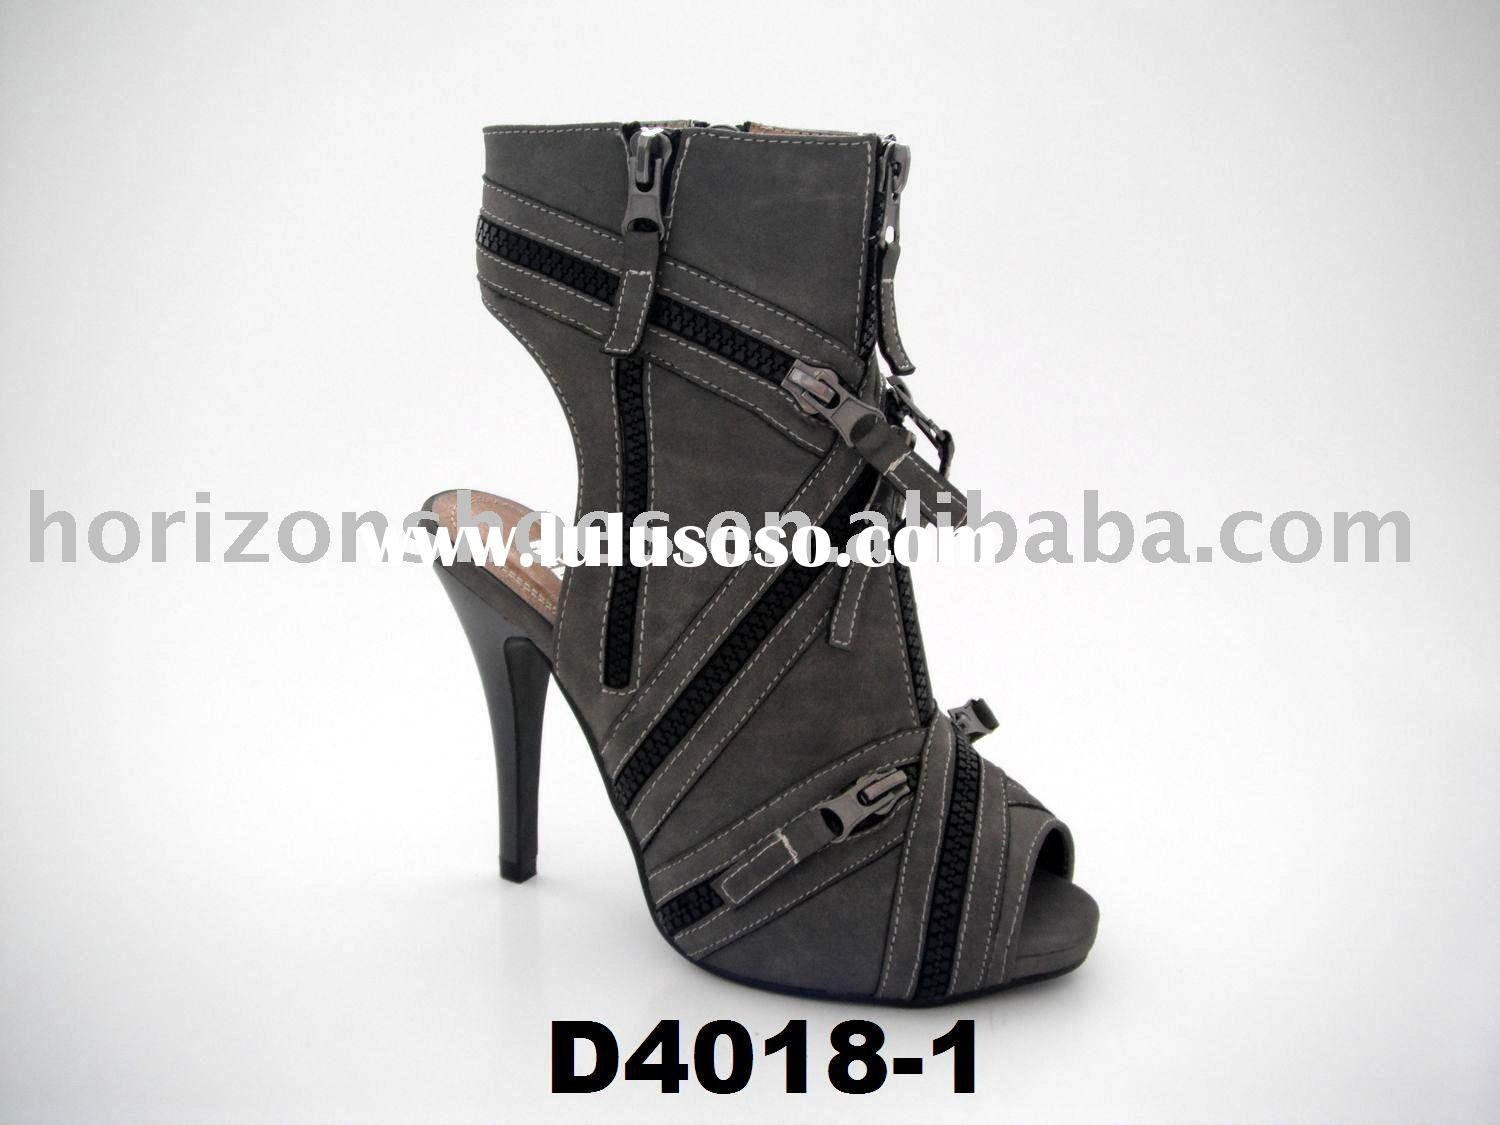 2011 Hot!Woman fashion boots, Lady shoes, High heel boots, Wholesale hot new style, D4018-1 Grey